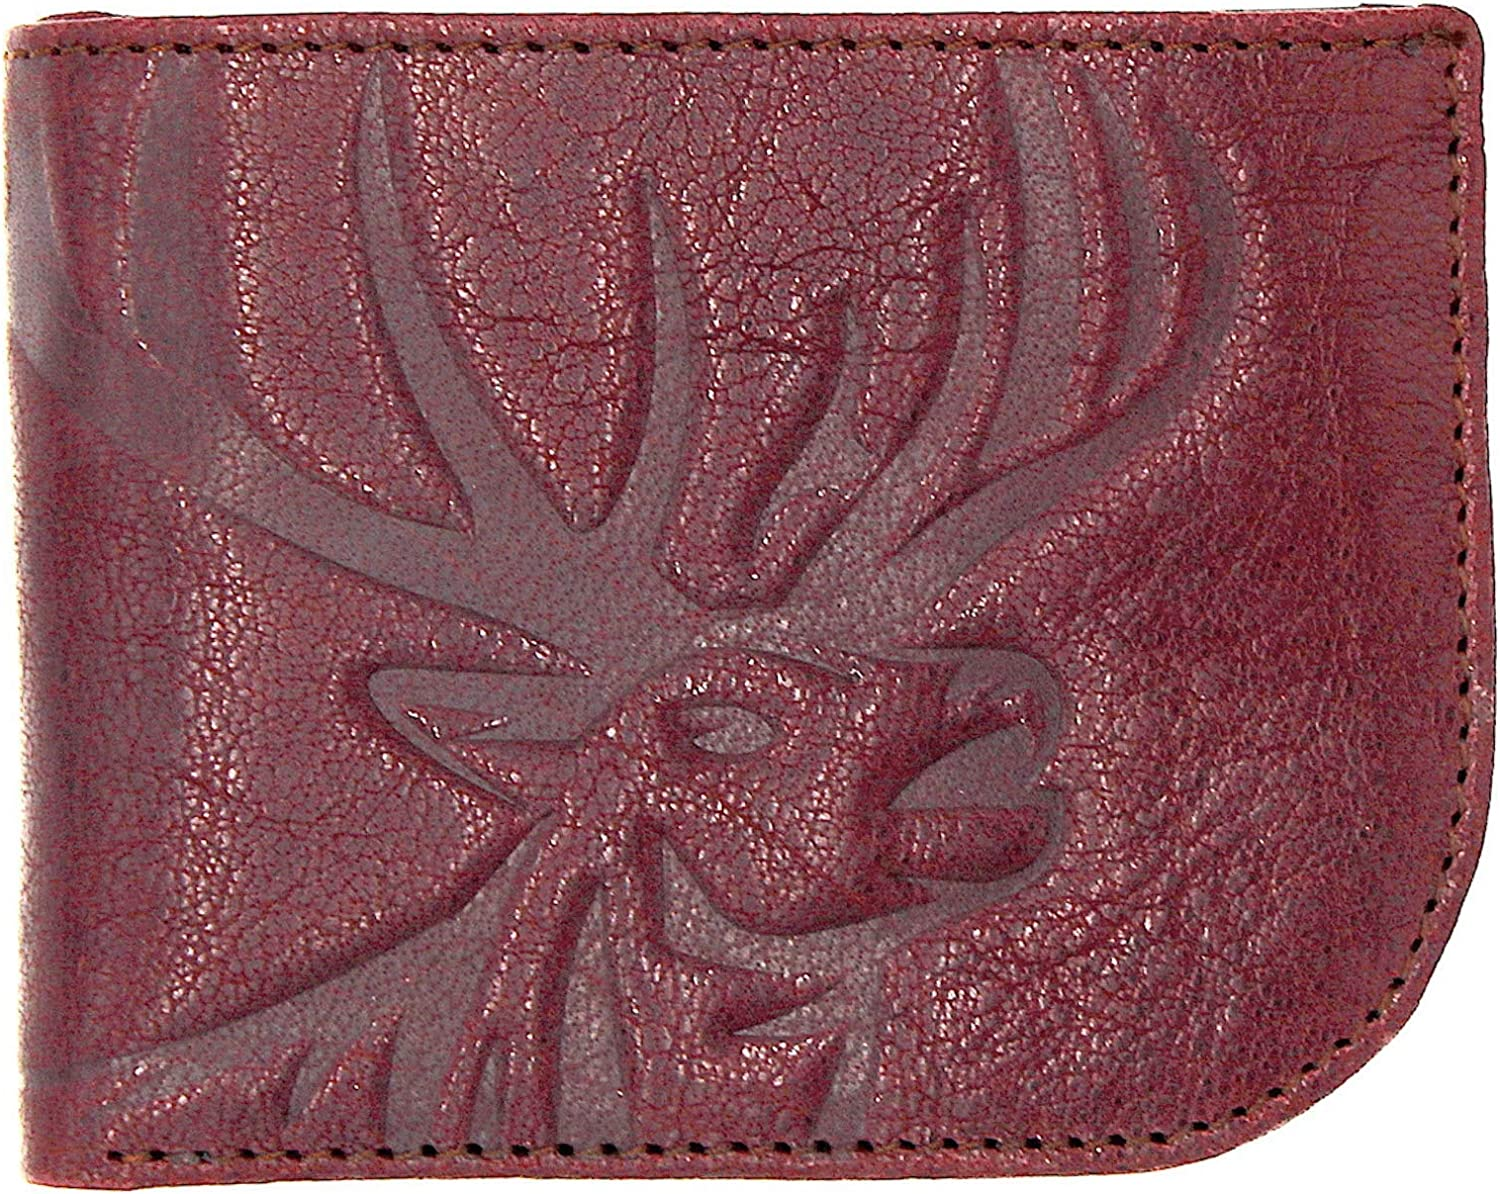 WEBER'S PREMIER LEATHER – New products world's highest quality popular 2021new shipping free shipping Pursuit Series Hunting Wa –RadiusElk